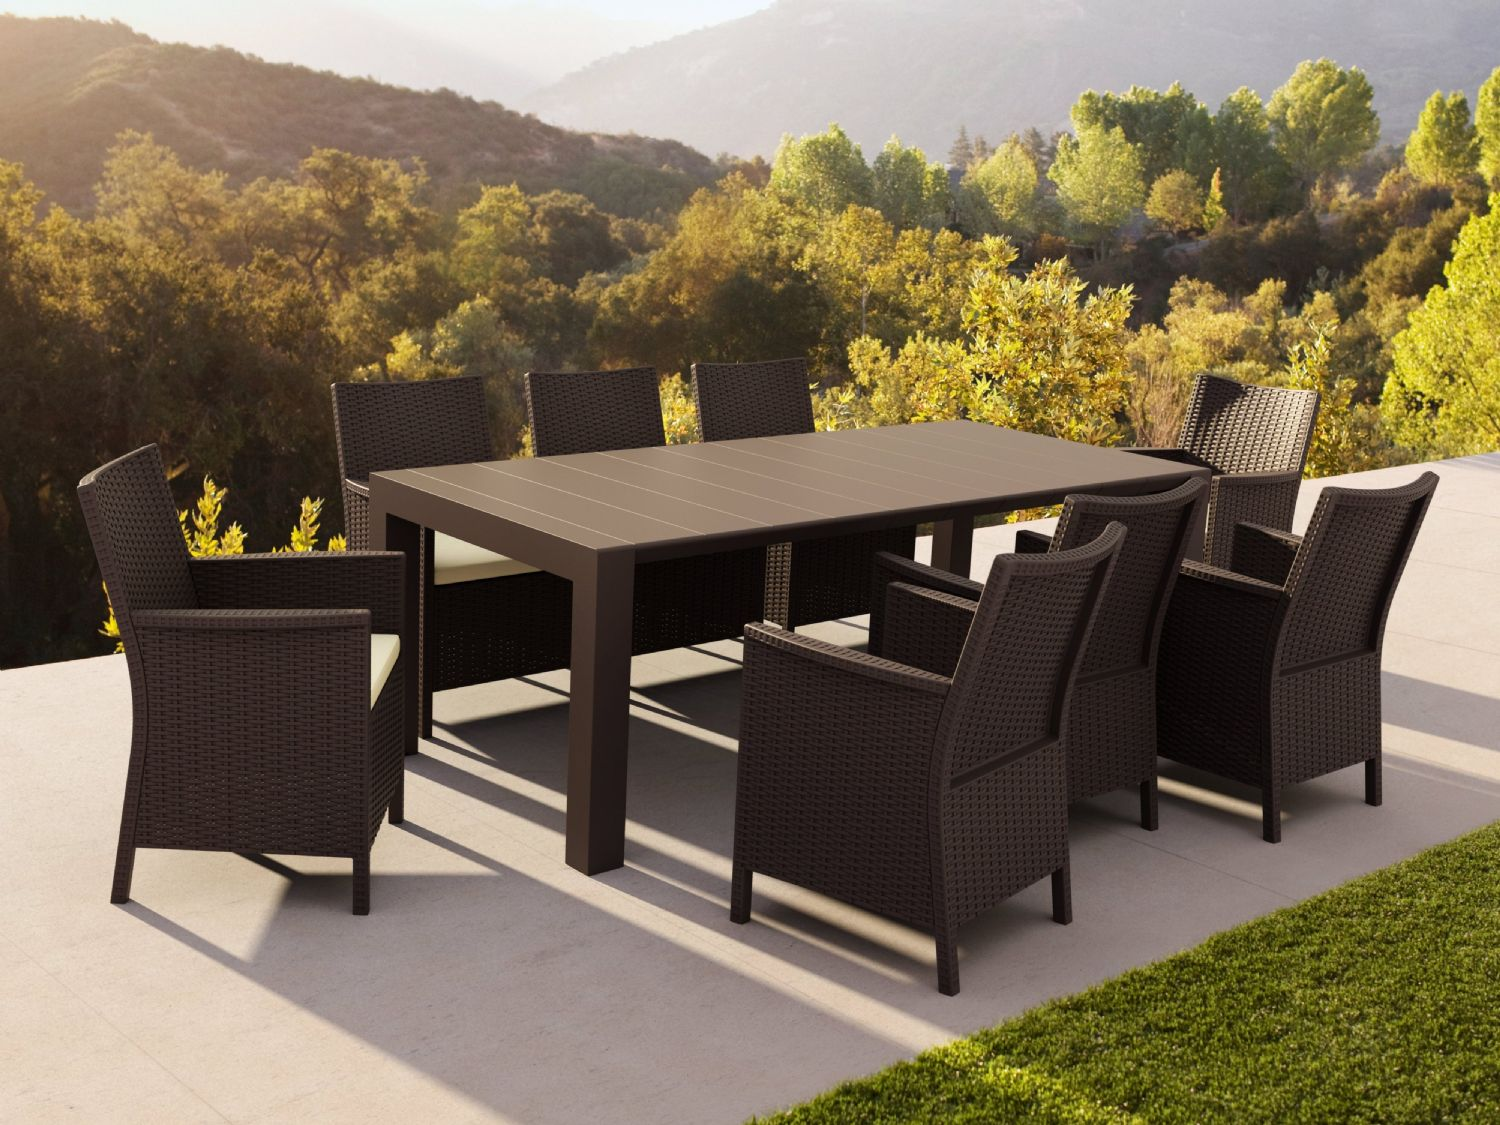 California Extendable Dining Set 9 Piece Brown ISP8066S-BR - 1